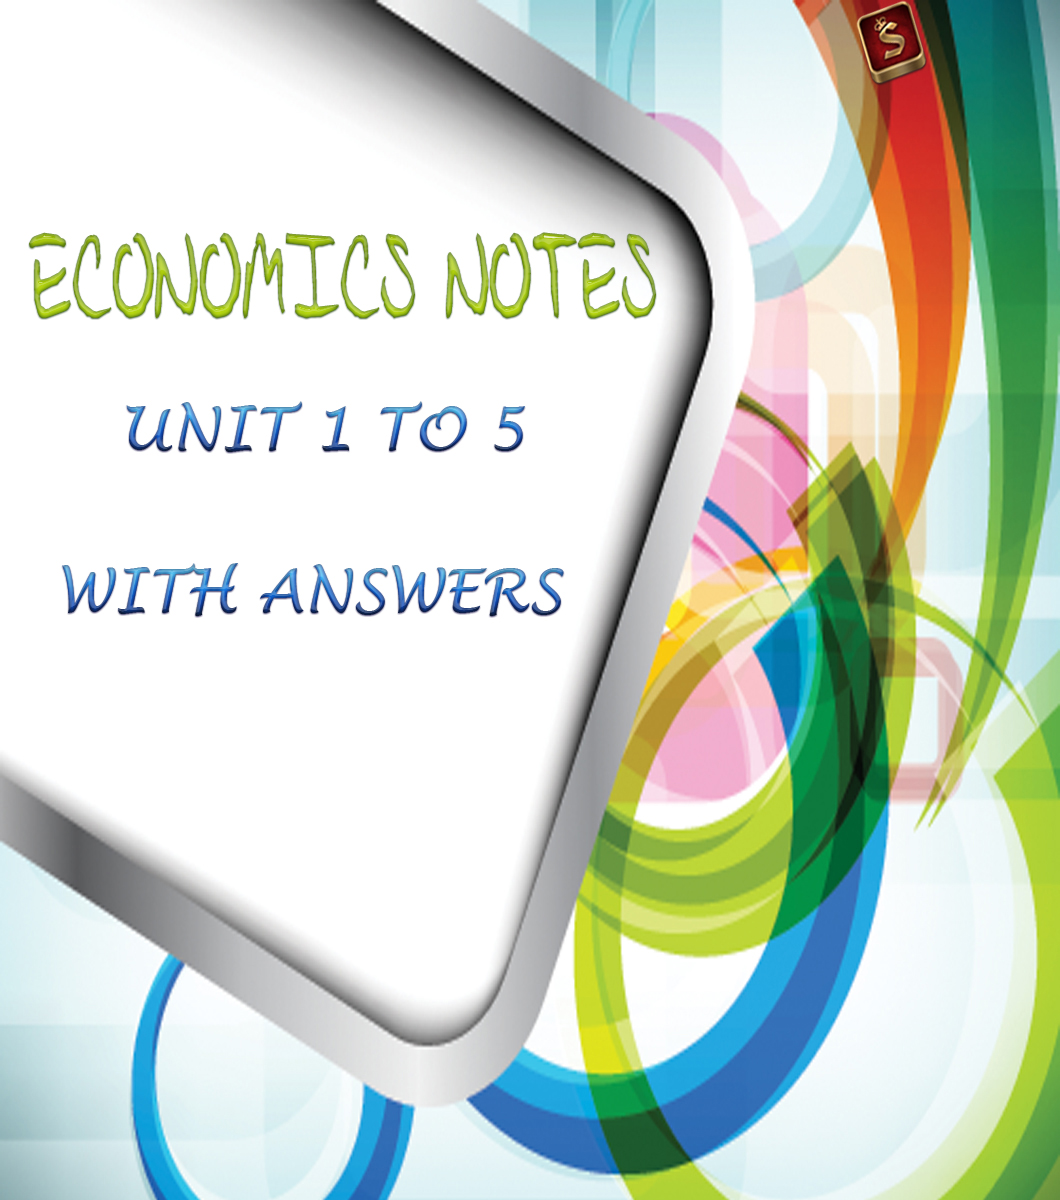 notes of unit 2 Pdf-notes-unit-1-lesson-2-regions-and-features-wvg0hbpdf thank you so much for being part of the betterlesson community we will use your feedback to improve the.